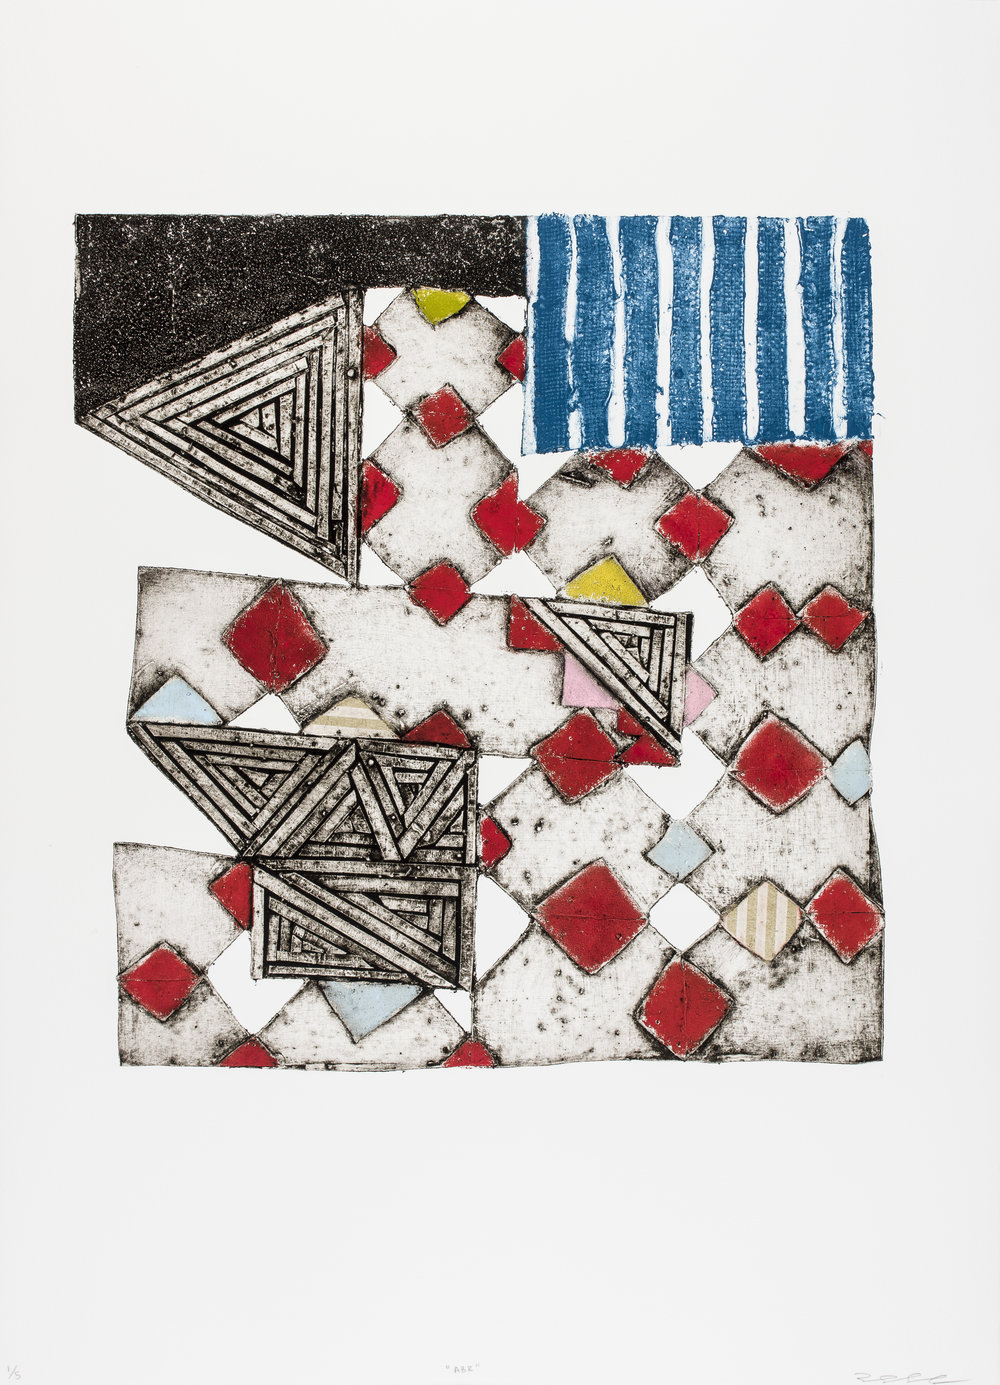 ABR , 2015   Collagraph with Chine Collé Image & Paper: 30.7 x 22 inches Edition of 5